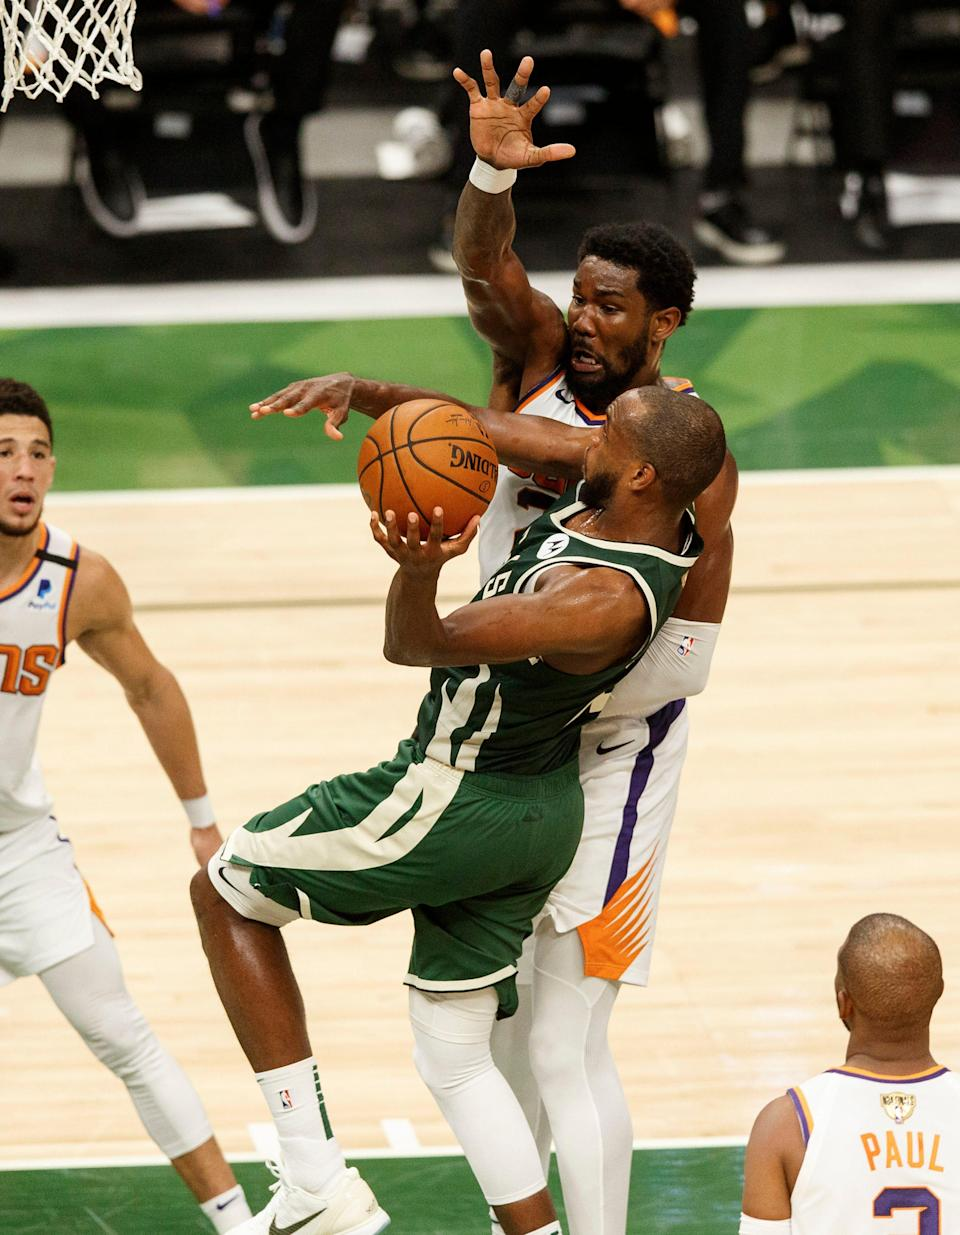 Khris Middleton (22) and the Bucks were able to score 54 points in the paint during Game 3 because of Deandre Ayton's foul trouble.